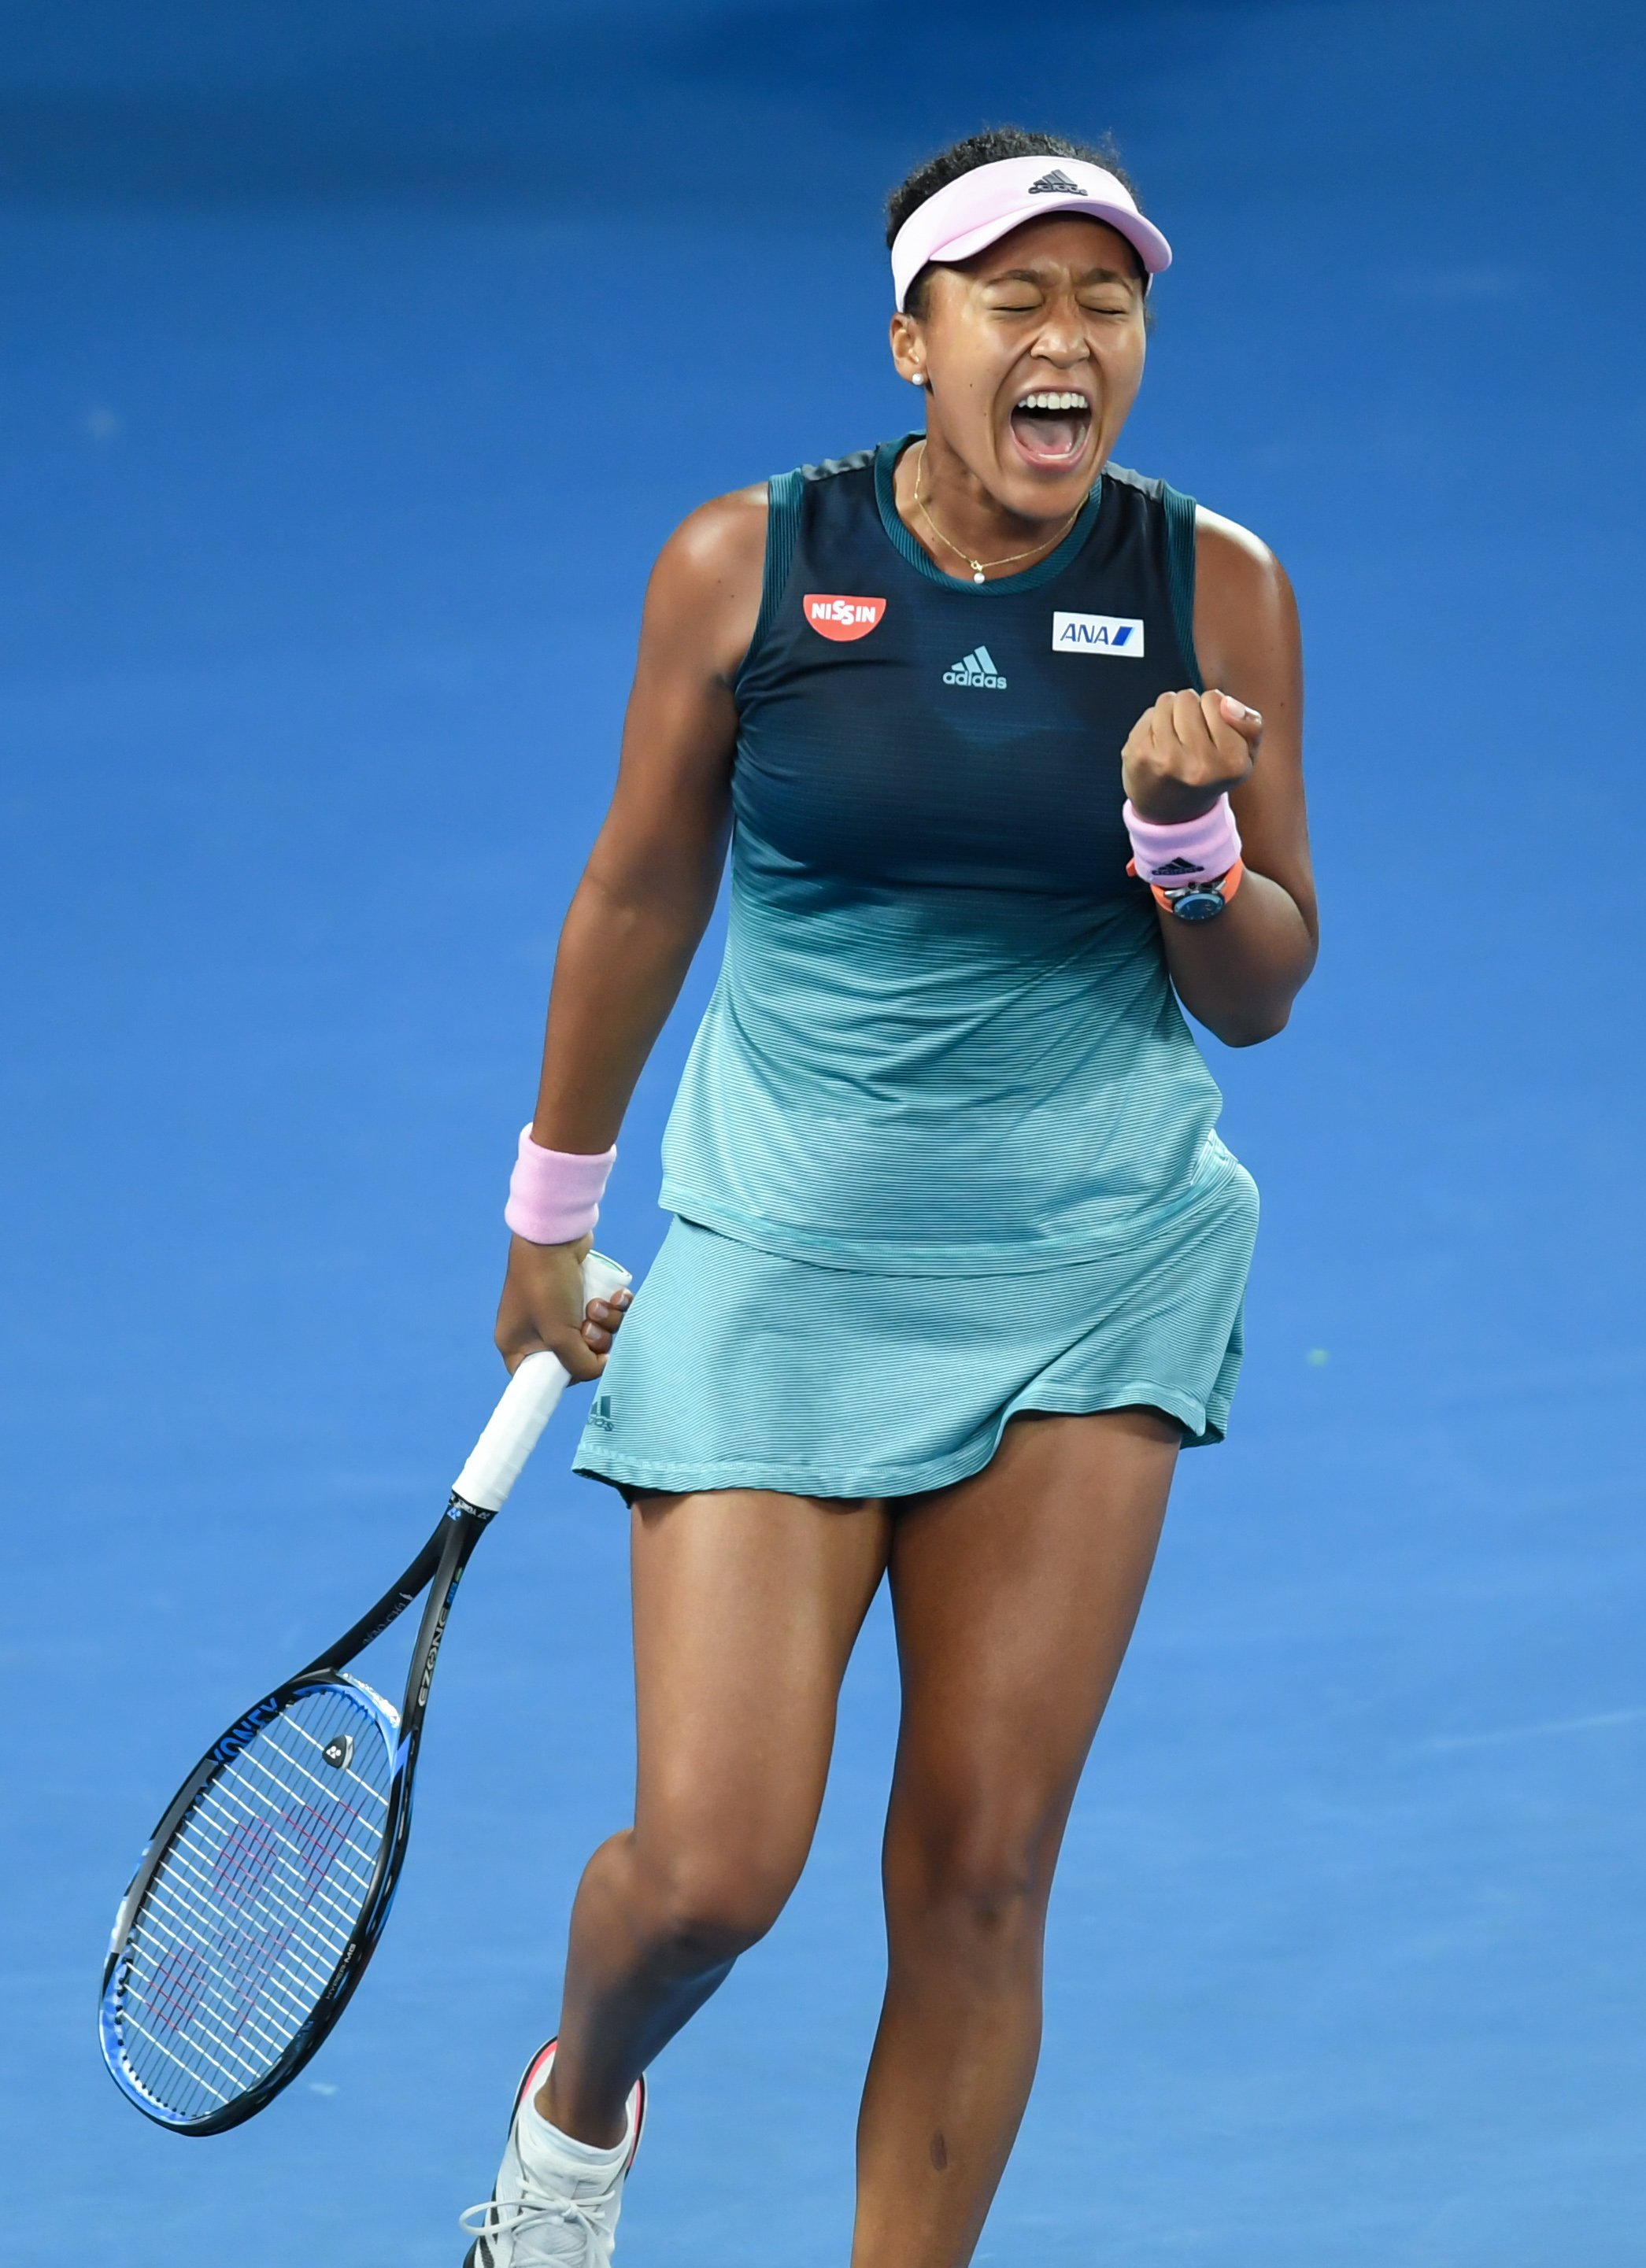 Naomi Osaka screams in delight after hitting a winner during the Women's singles final during day 13 of the 2019 Australian Open at Melbourne Park on January 26, 2019 in Melbourne, Australia   Photo: Getty Images